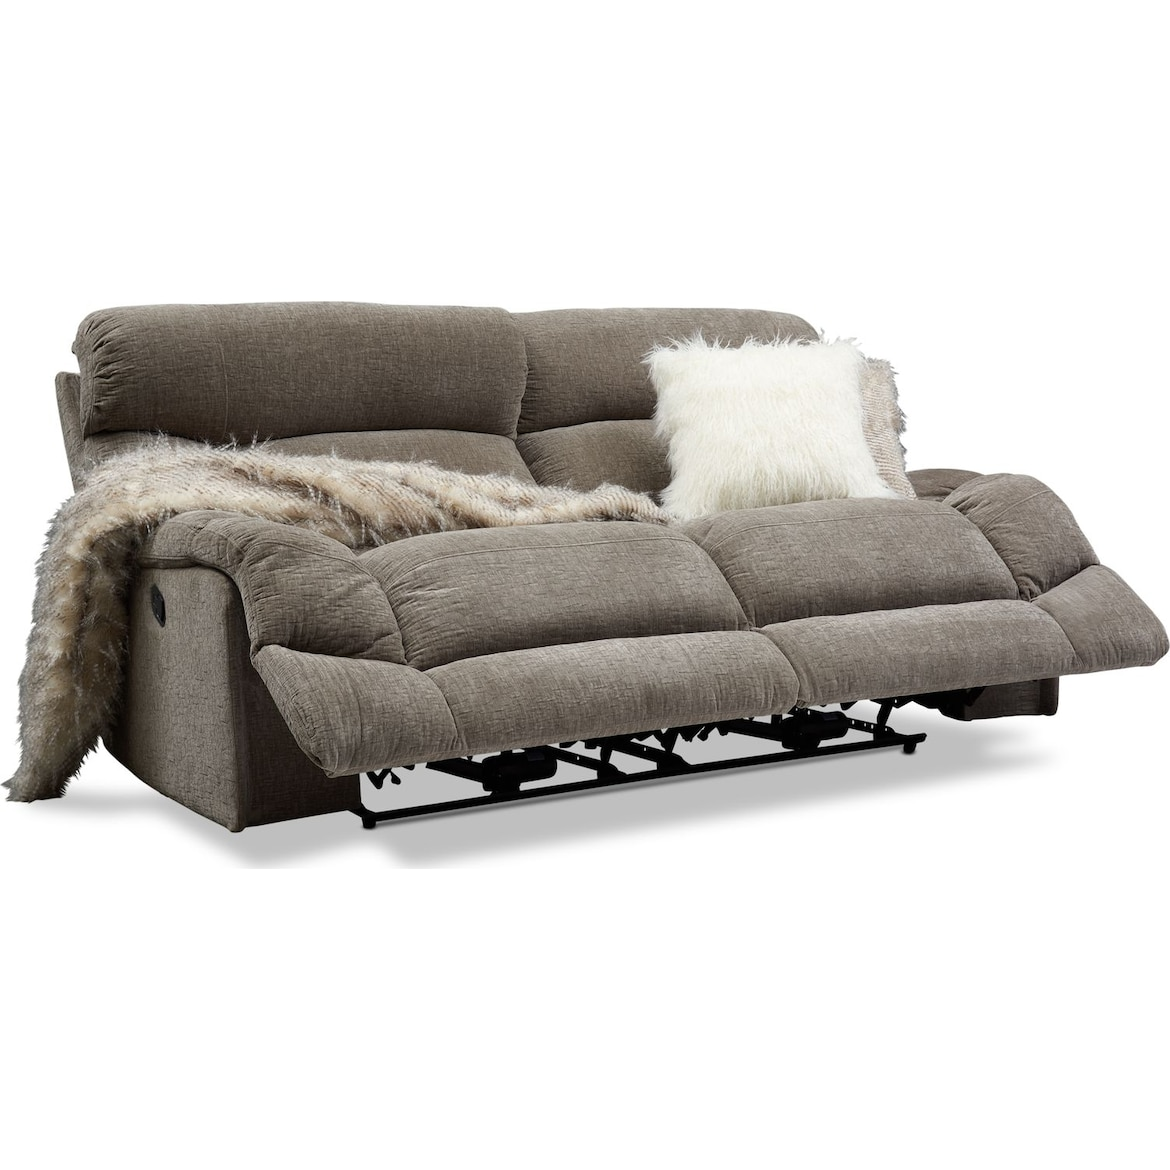 Wave Manual Reclining Sofa Value City Furniture And Mattresses